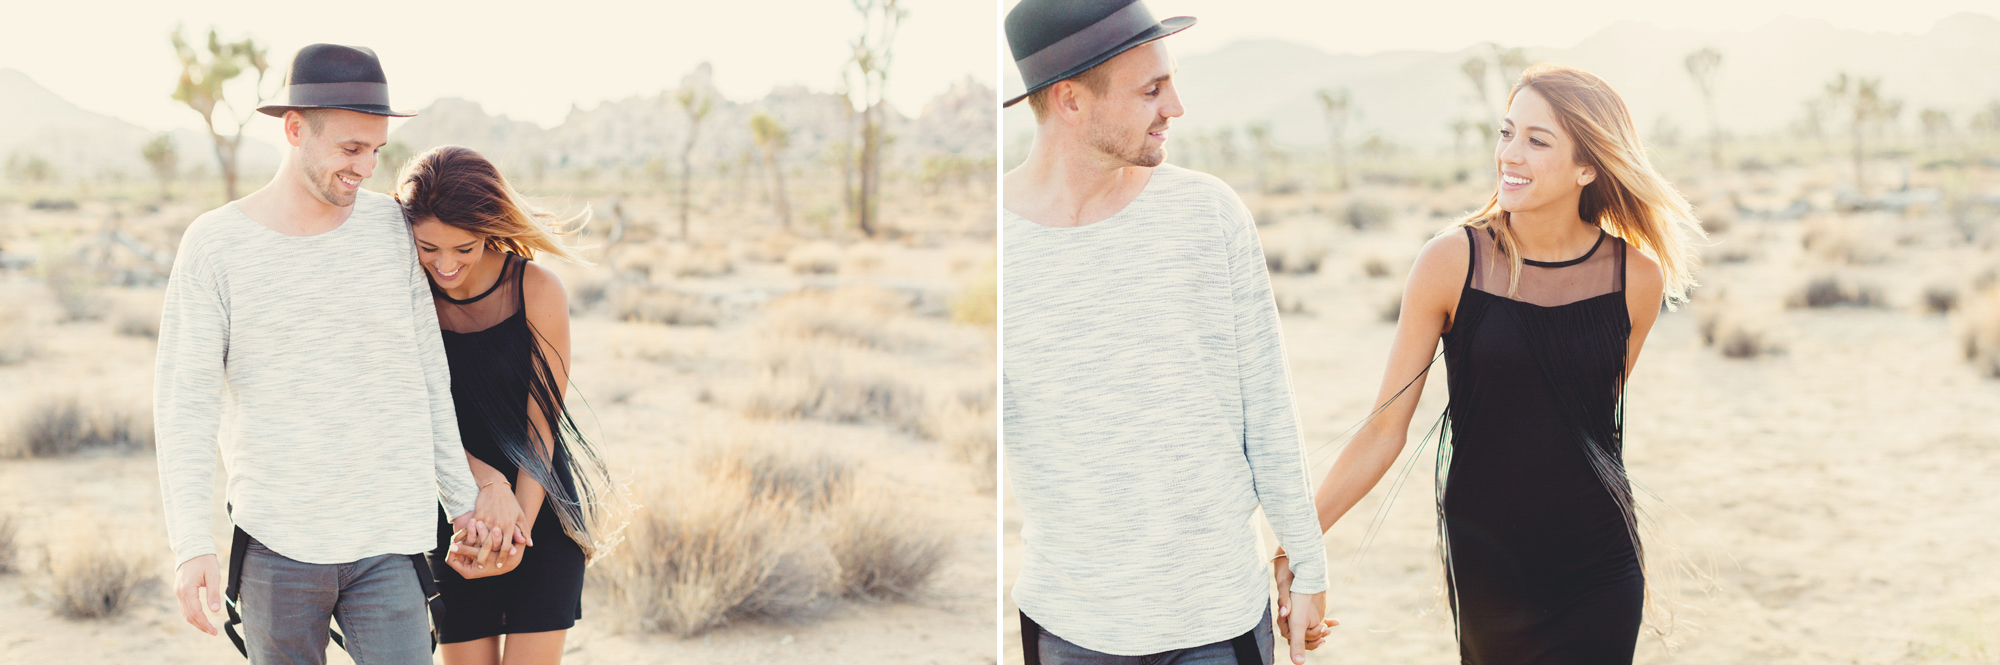 Joshua Tree Engagement Session @Anne-Claire Brun -11